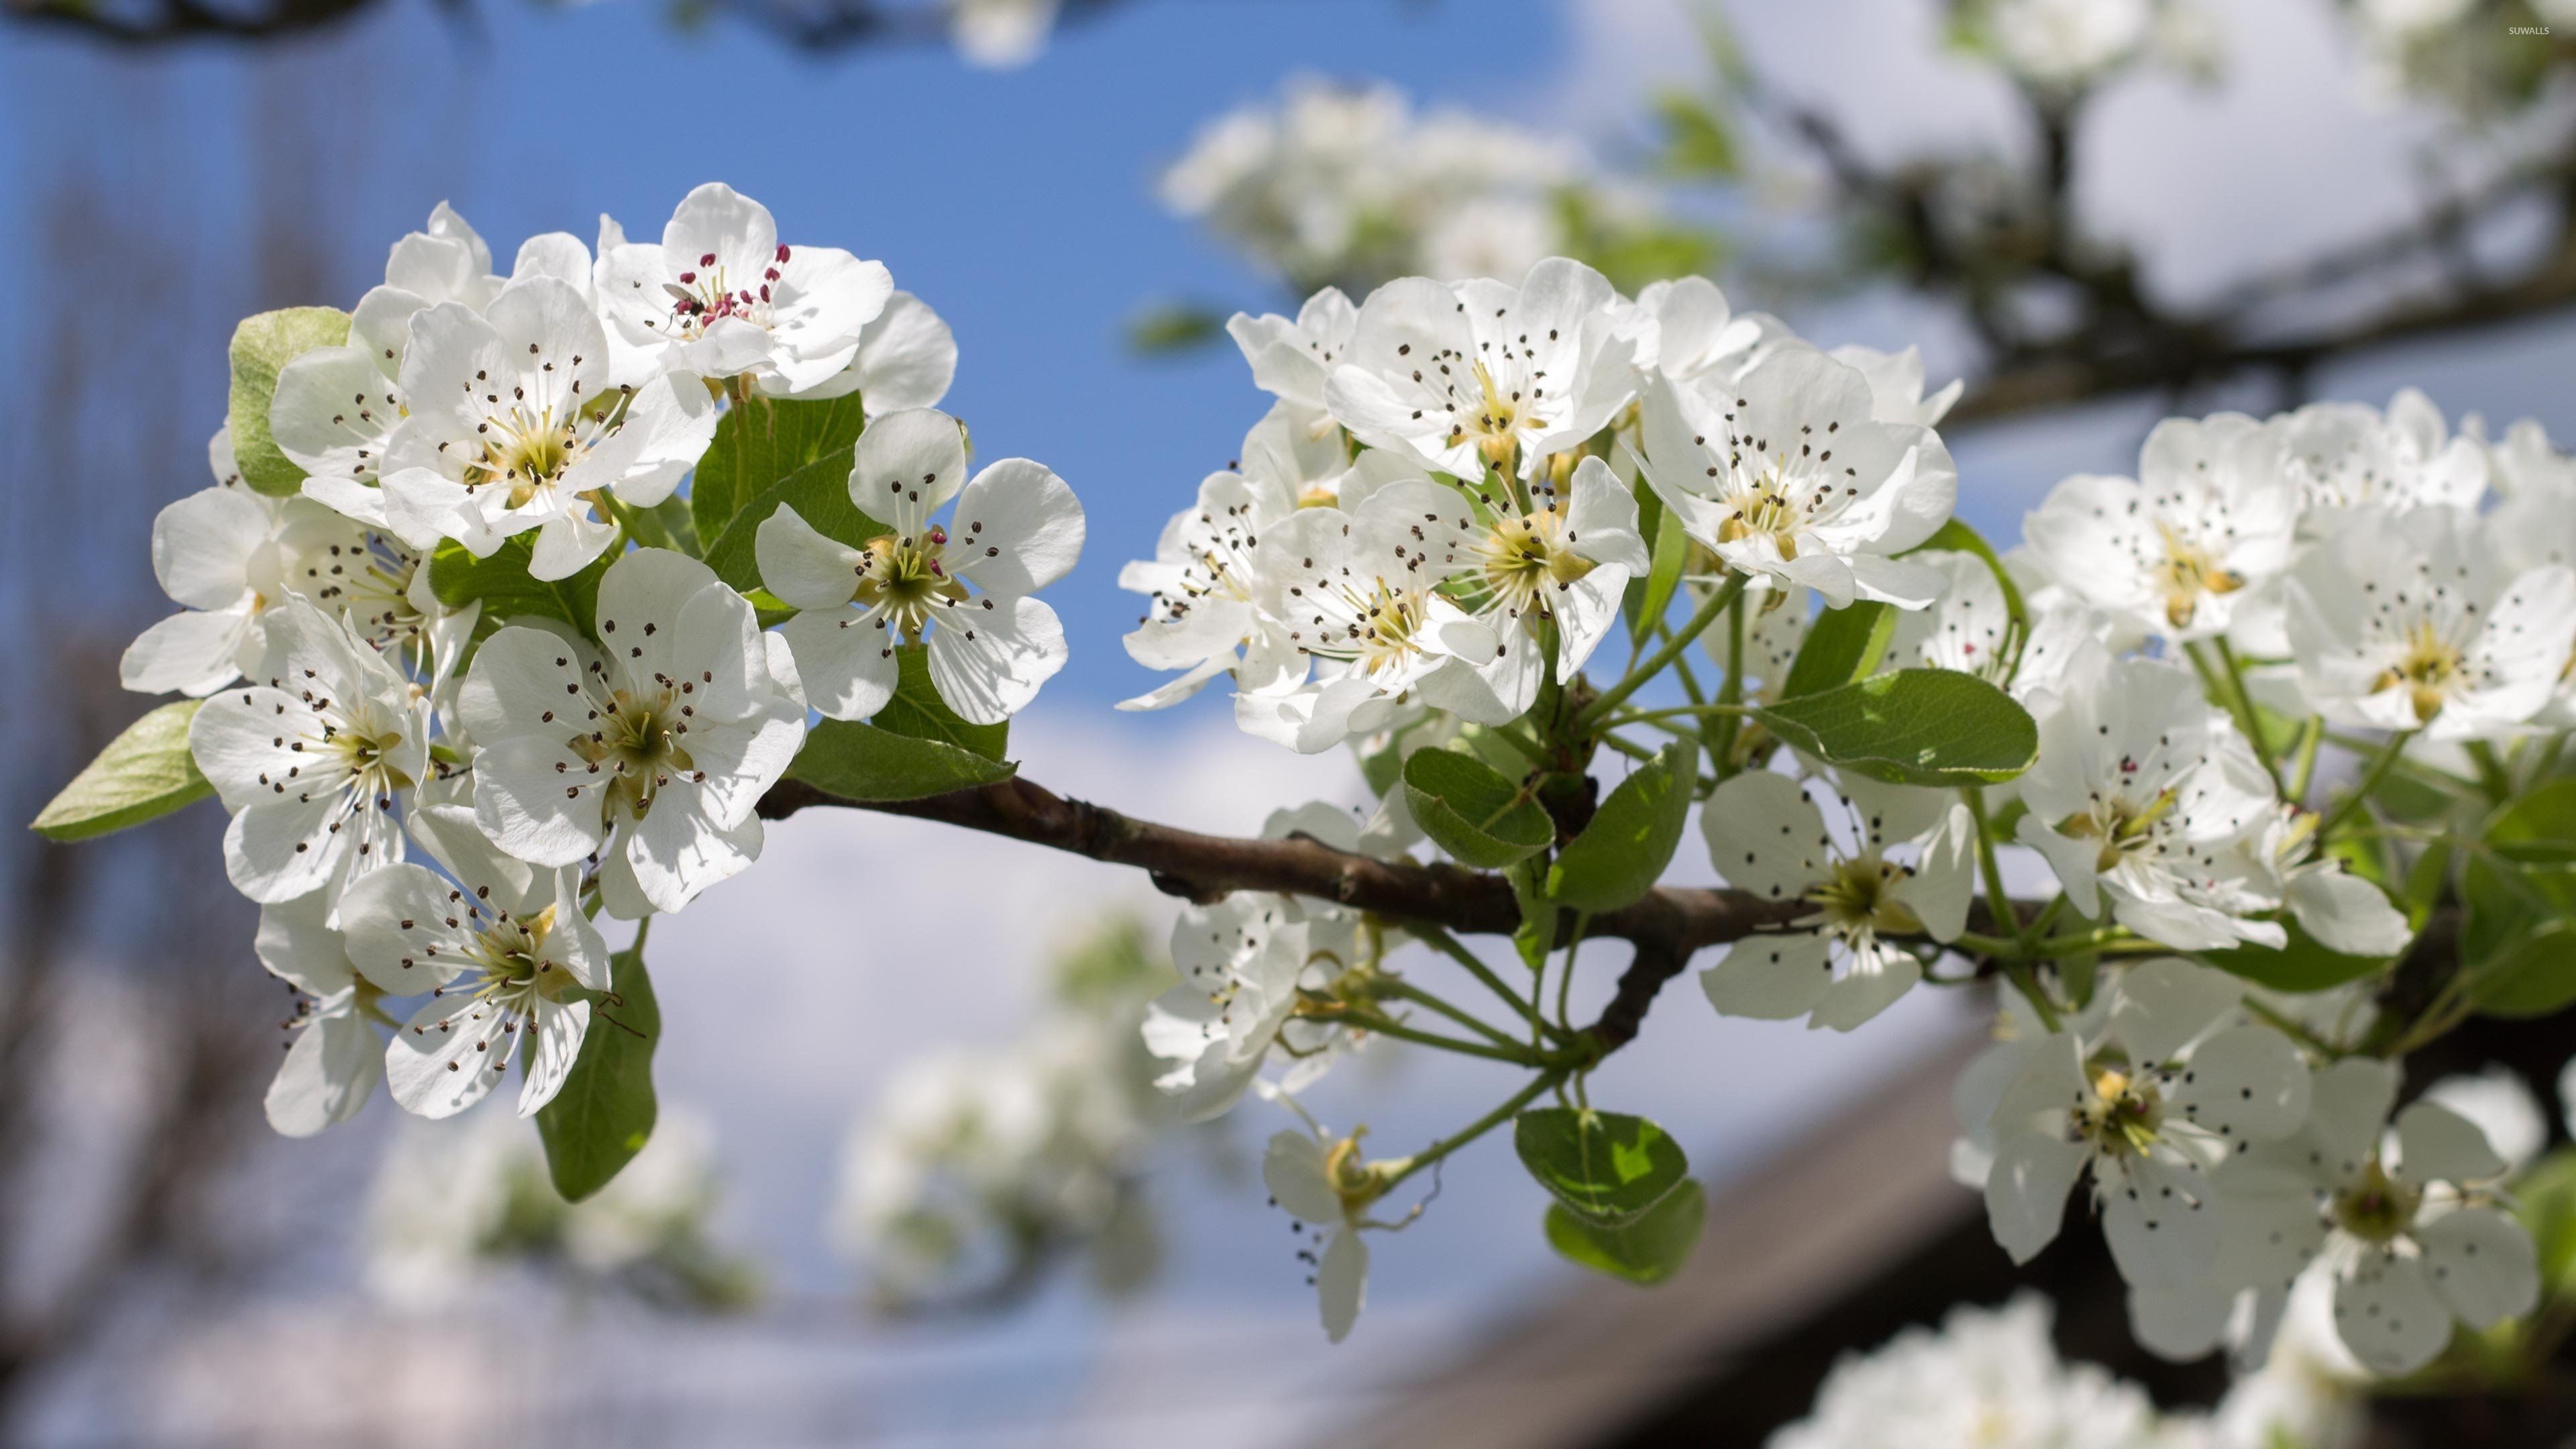 Res: 3840x2160, Spring blossoms on a pear tree wallpaper